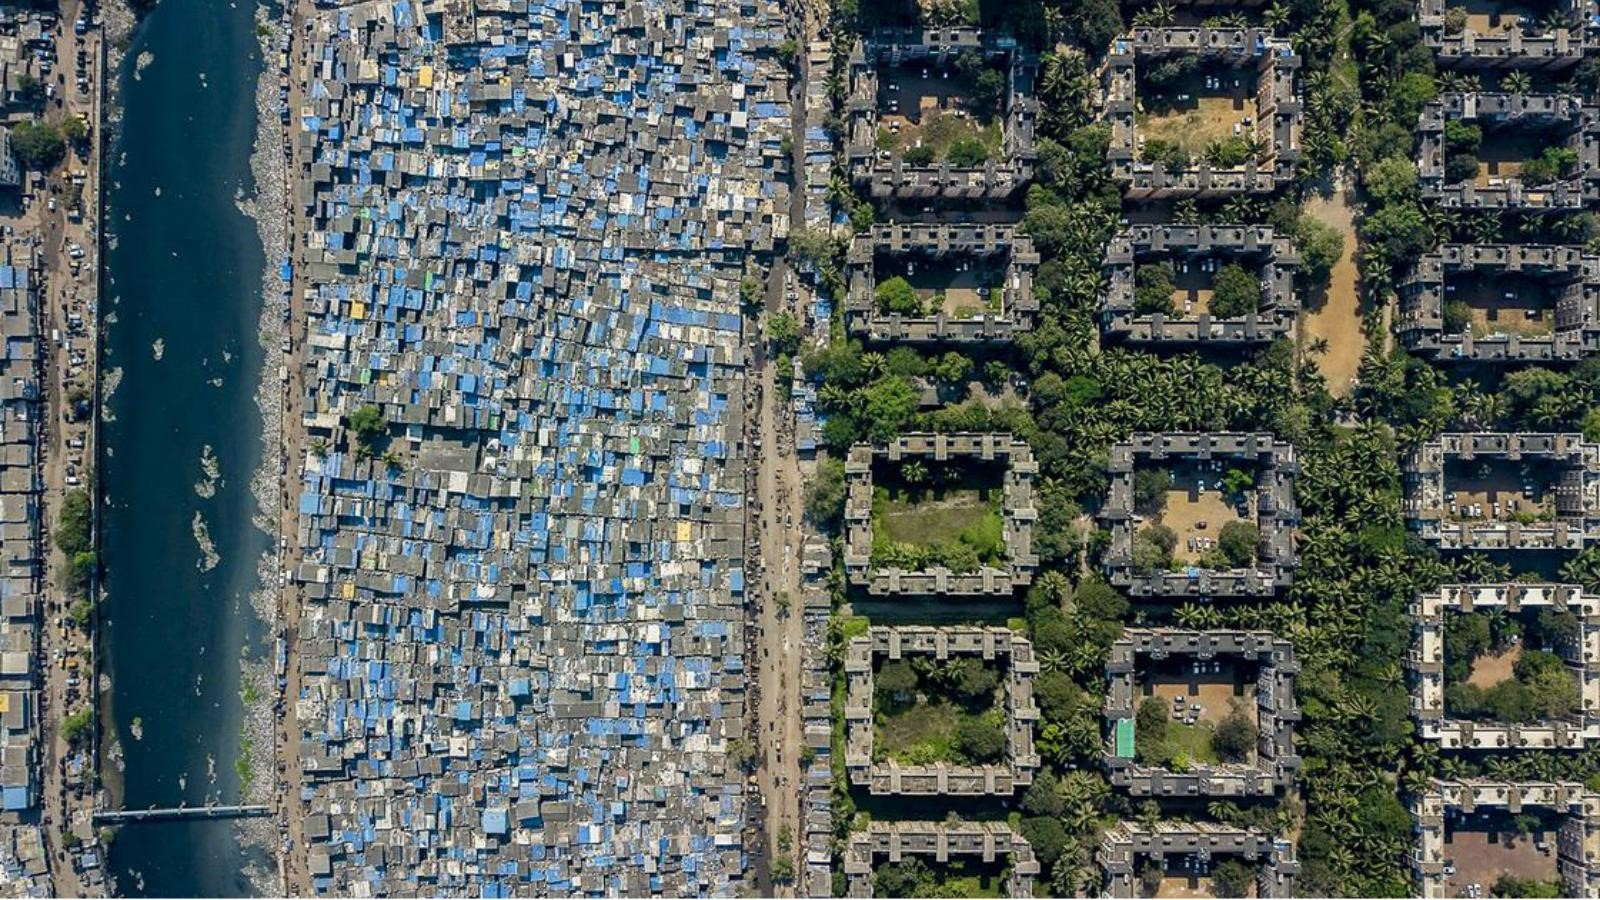 TedTalks for Architects: What if the poor were part of city planning? by Smruti Jukur Johari - Sheet3